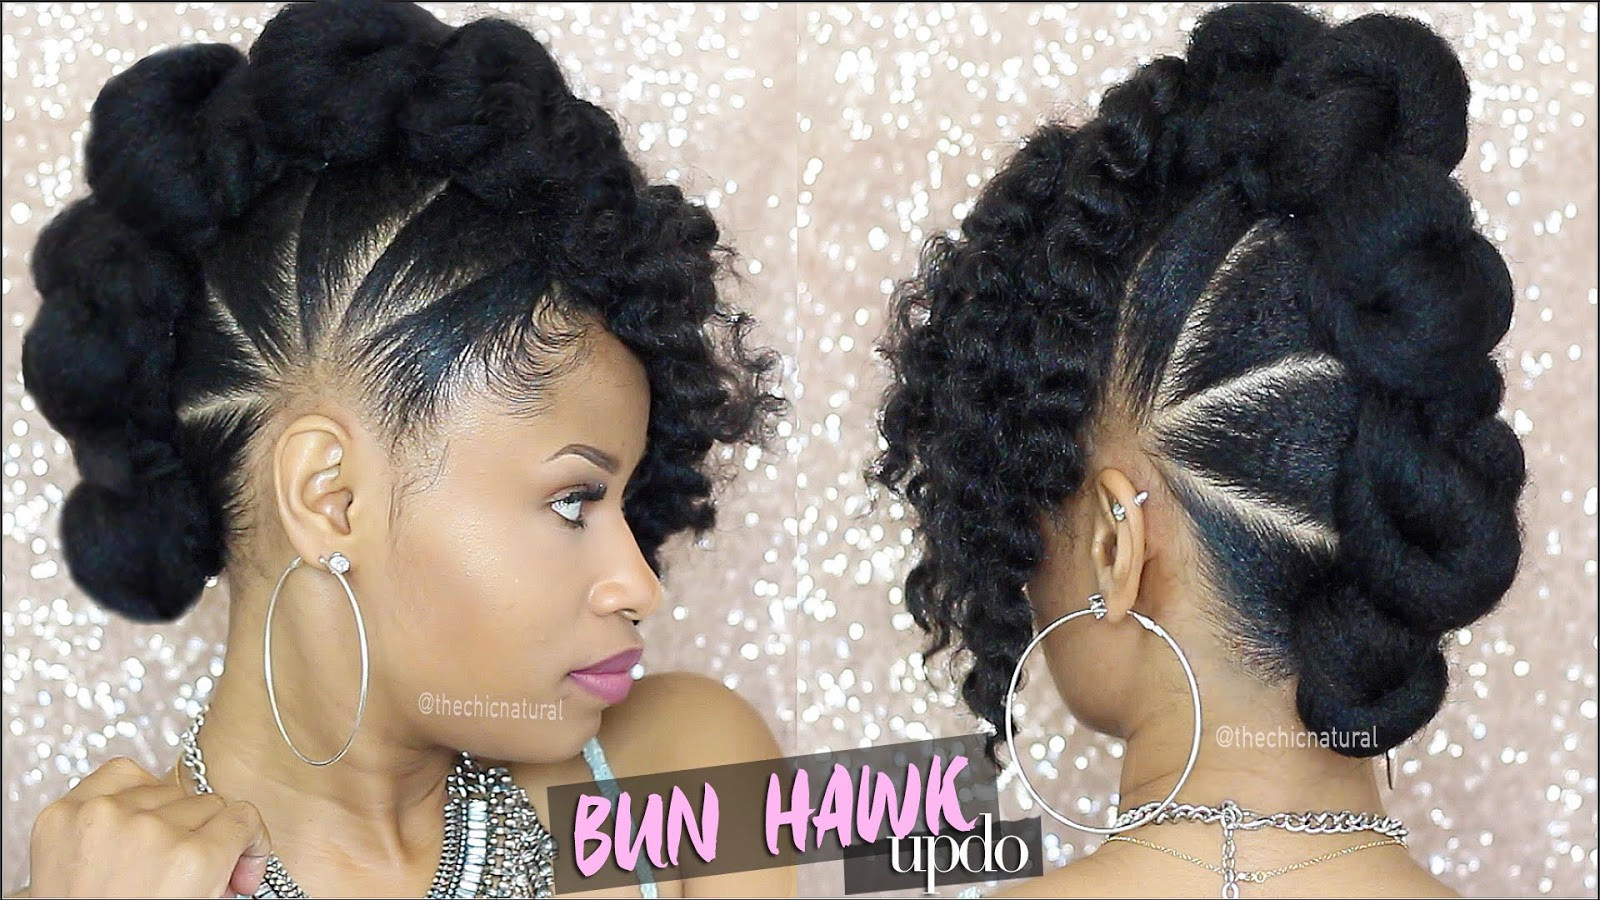 Best ideas about Black Natural Updo Hairstyles . Save or Pin 5 Protective Styles For Spring CurlyNikki Now.